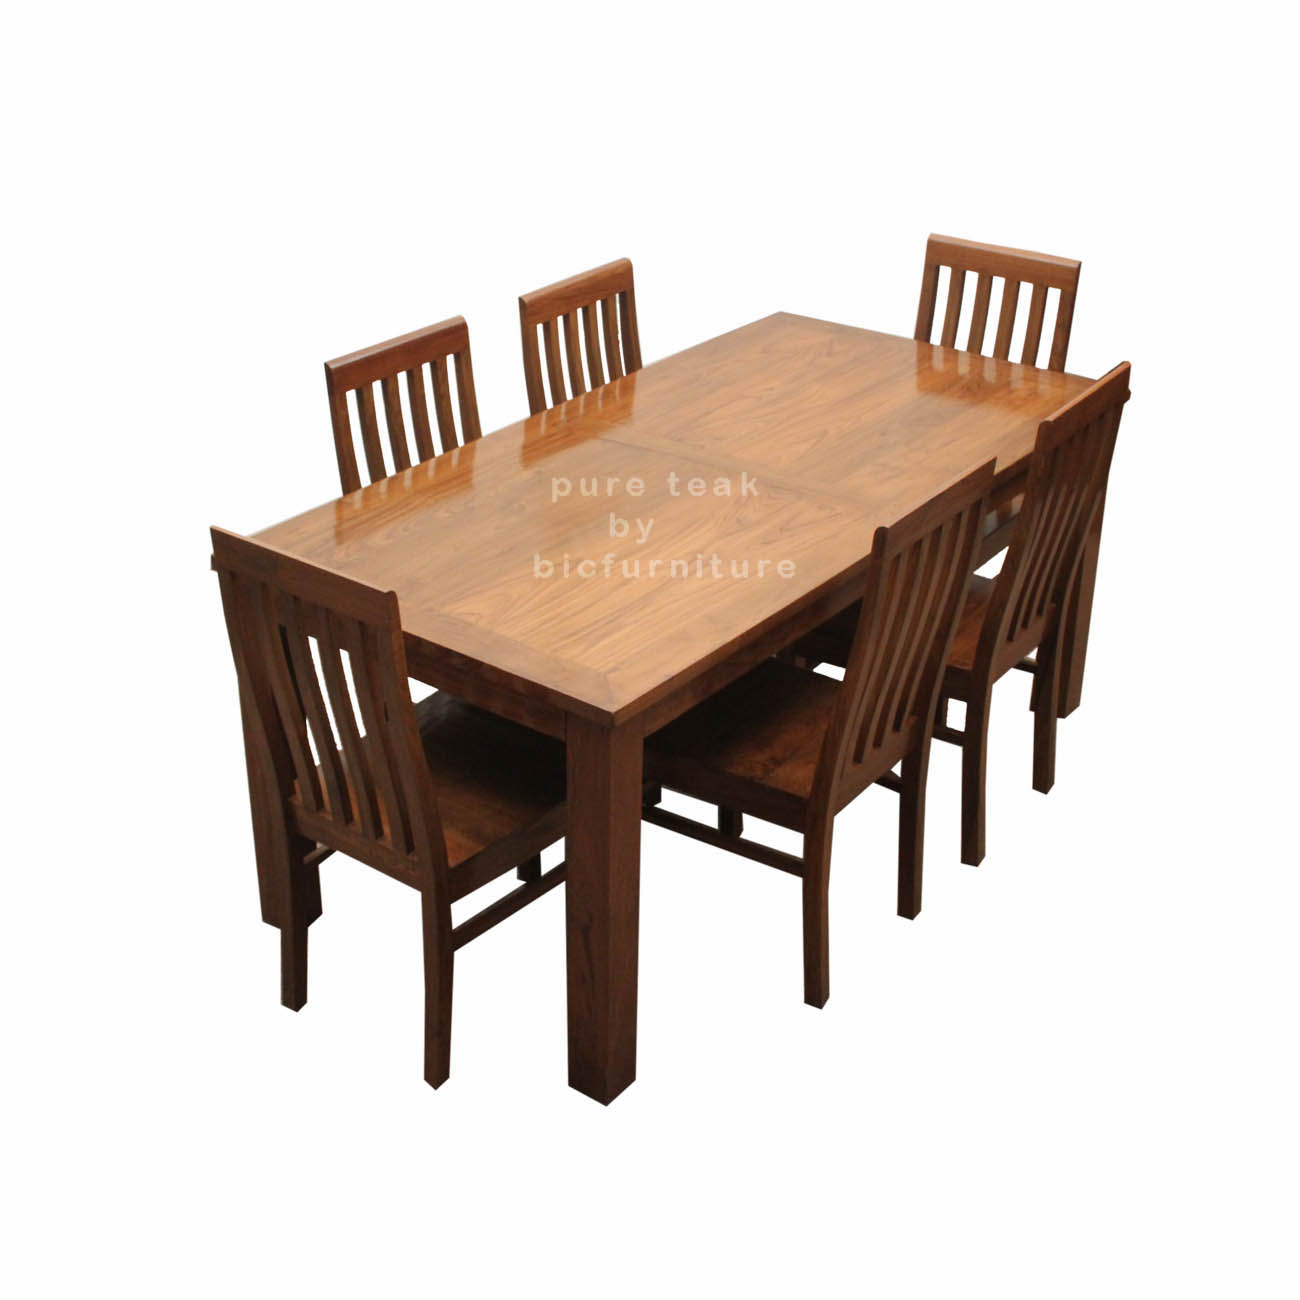 Picture Of Teak Wood Kitchen Set